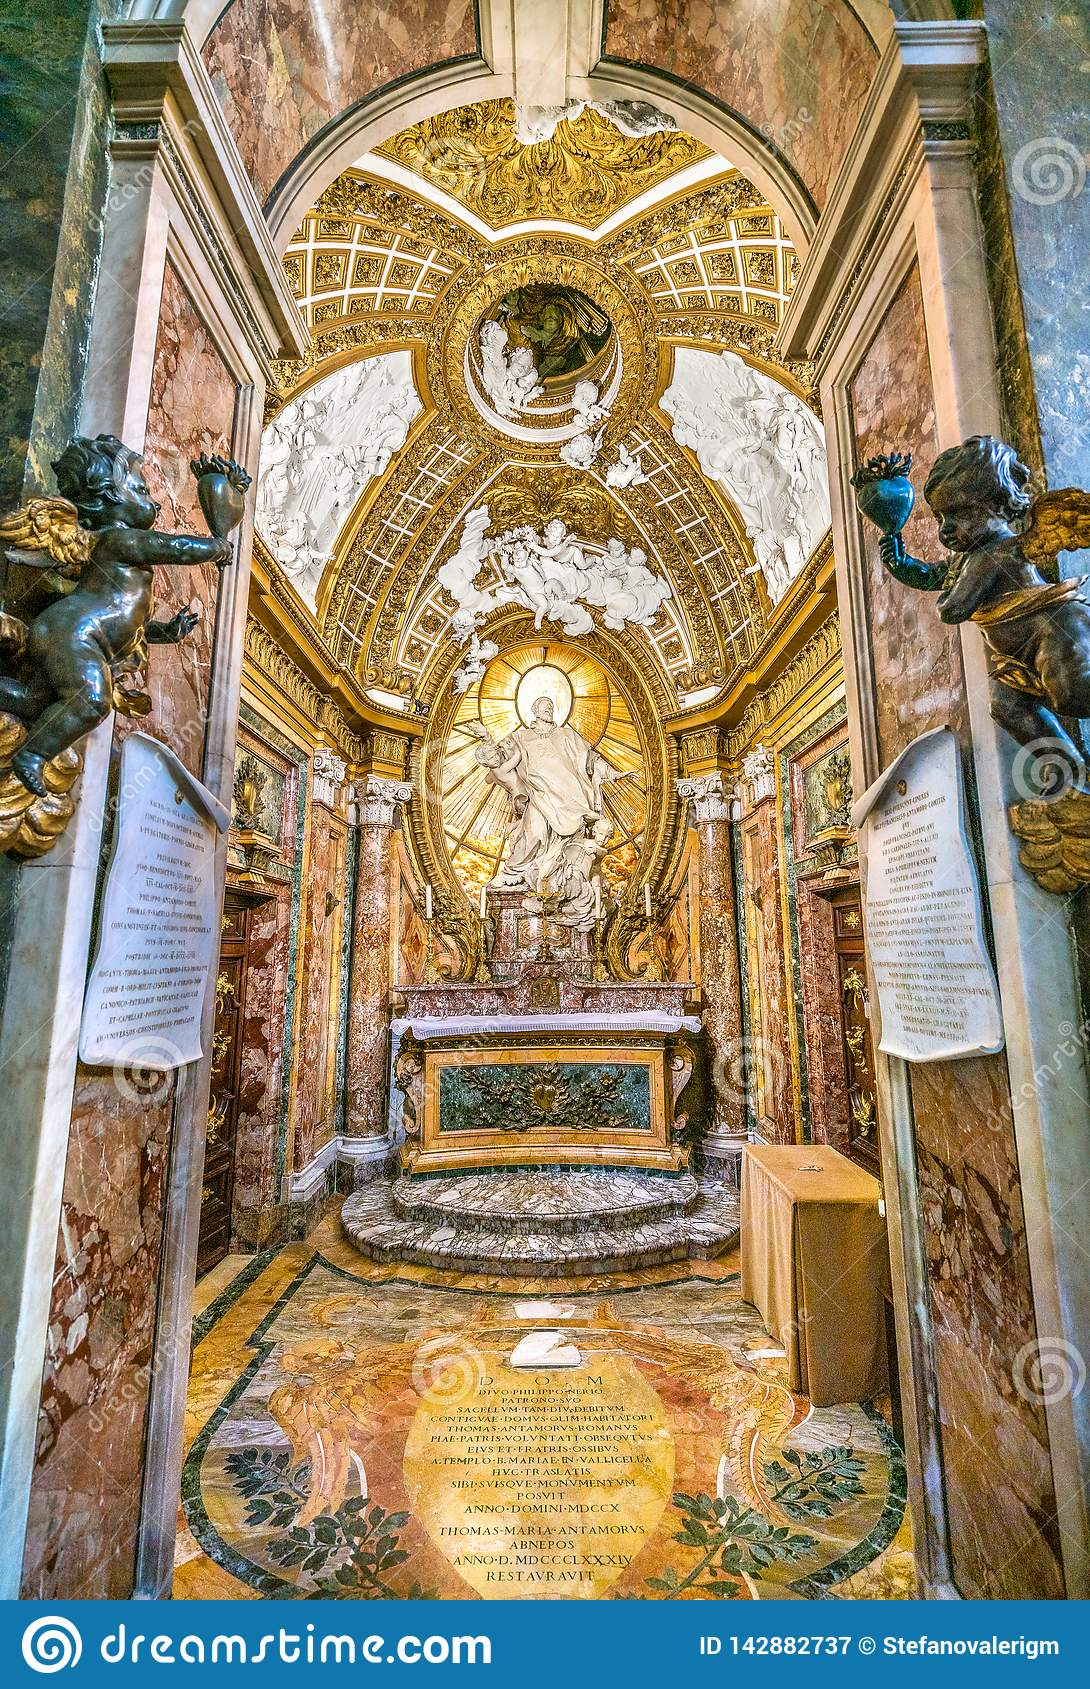 Antamoro Chapel or Chapel of Saint Philip Neri Church of San Girolamo della Carità in Rome, Italy.